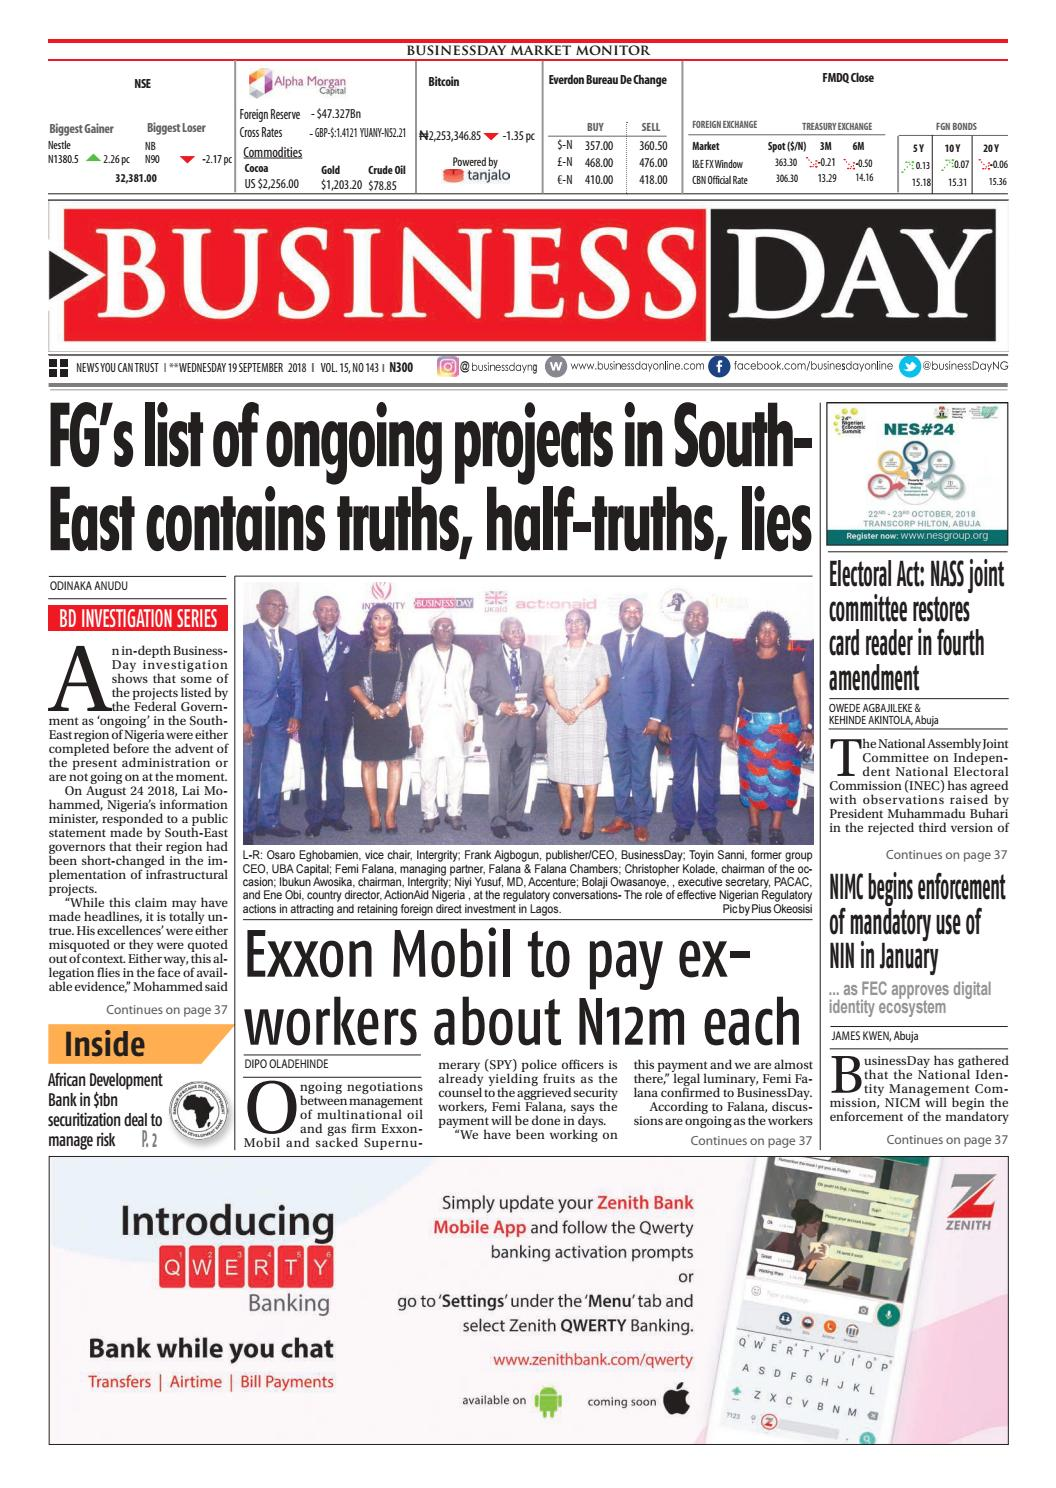 BusinessDay 19 Sep 2018 by BusinessDay - issuu